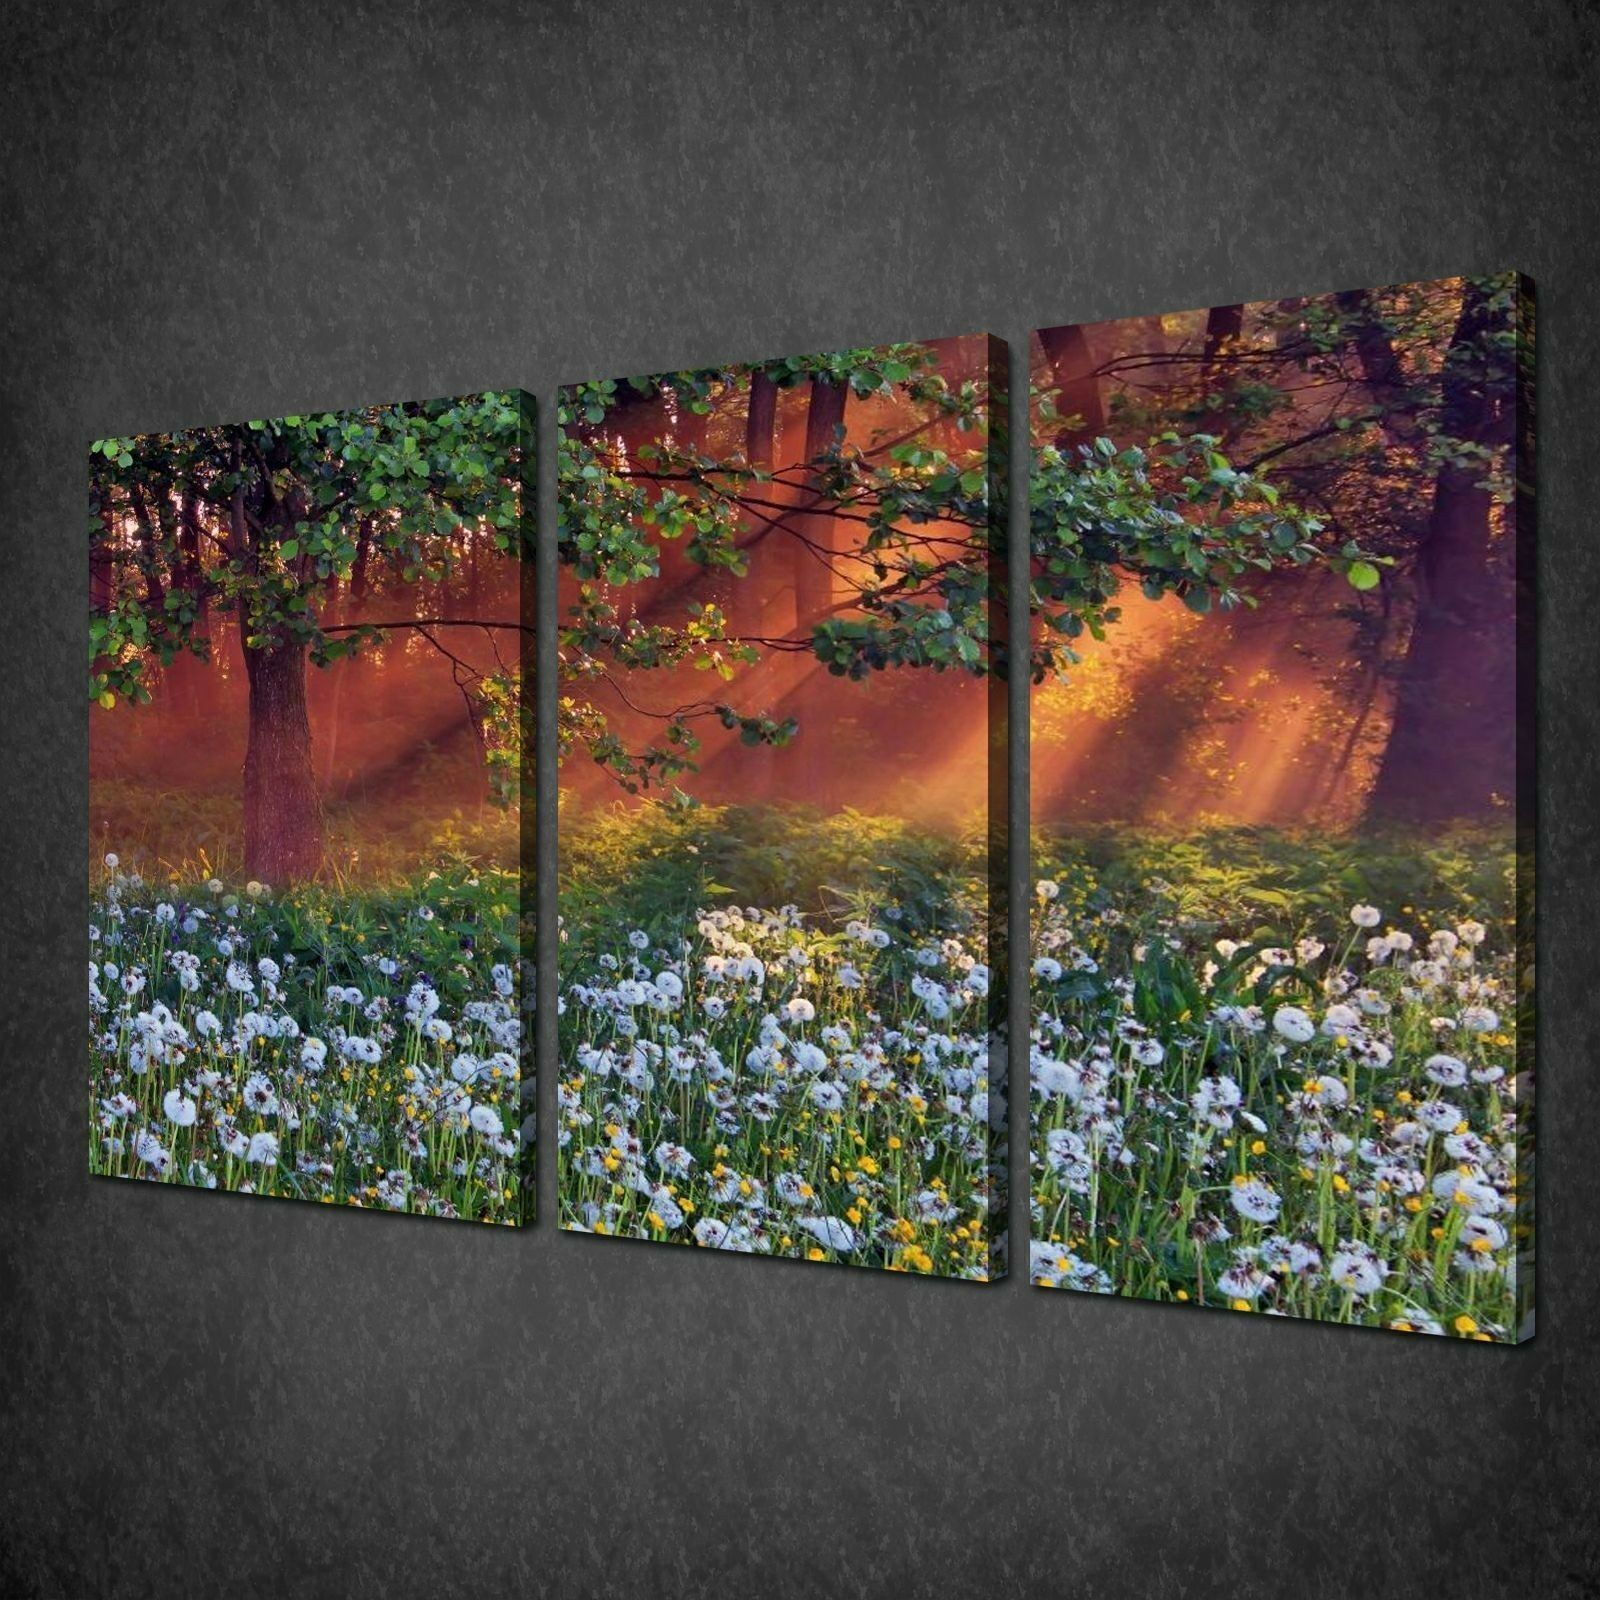 DANDELIONS IN THE WOOD SUNSET 3 PANELS CANVAS PRINT PICTURE READY TO HANG